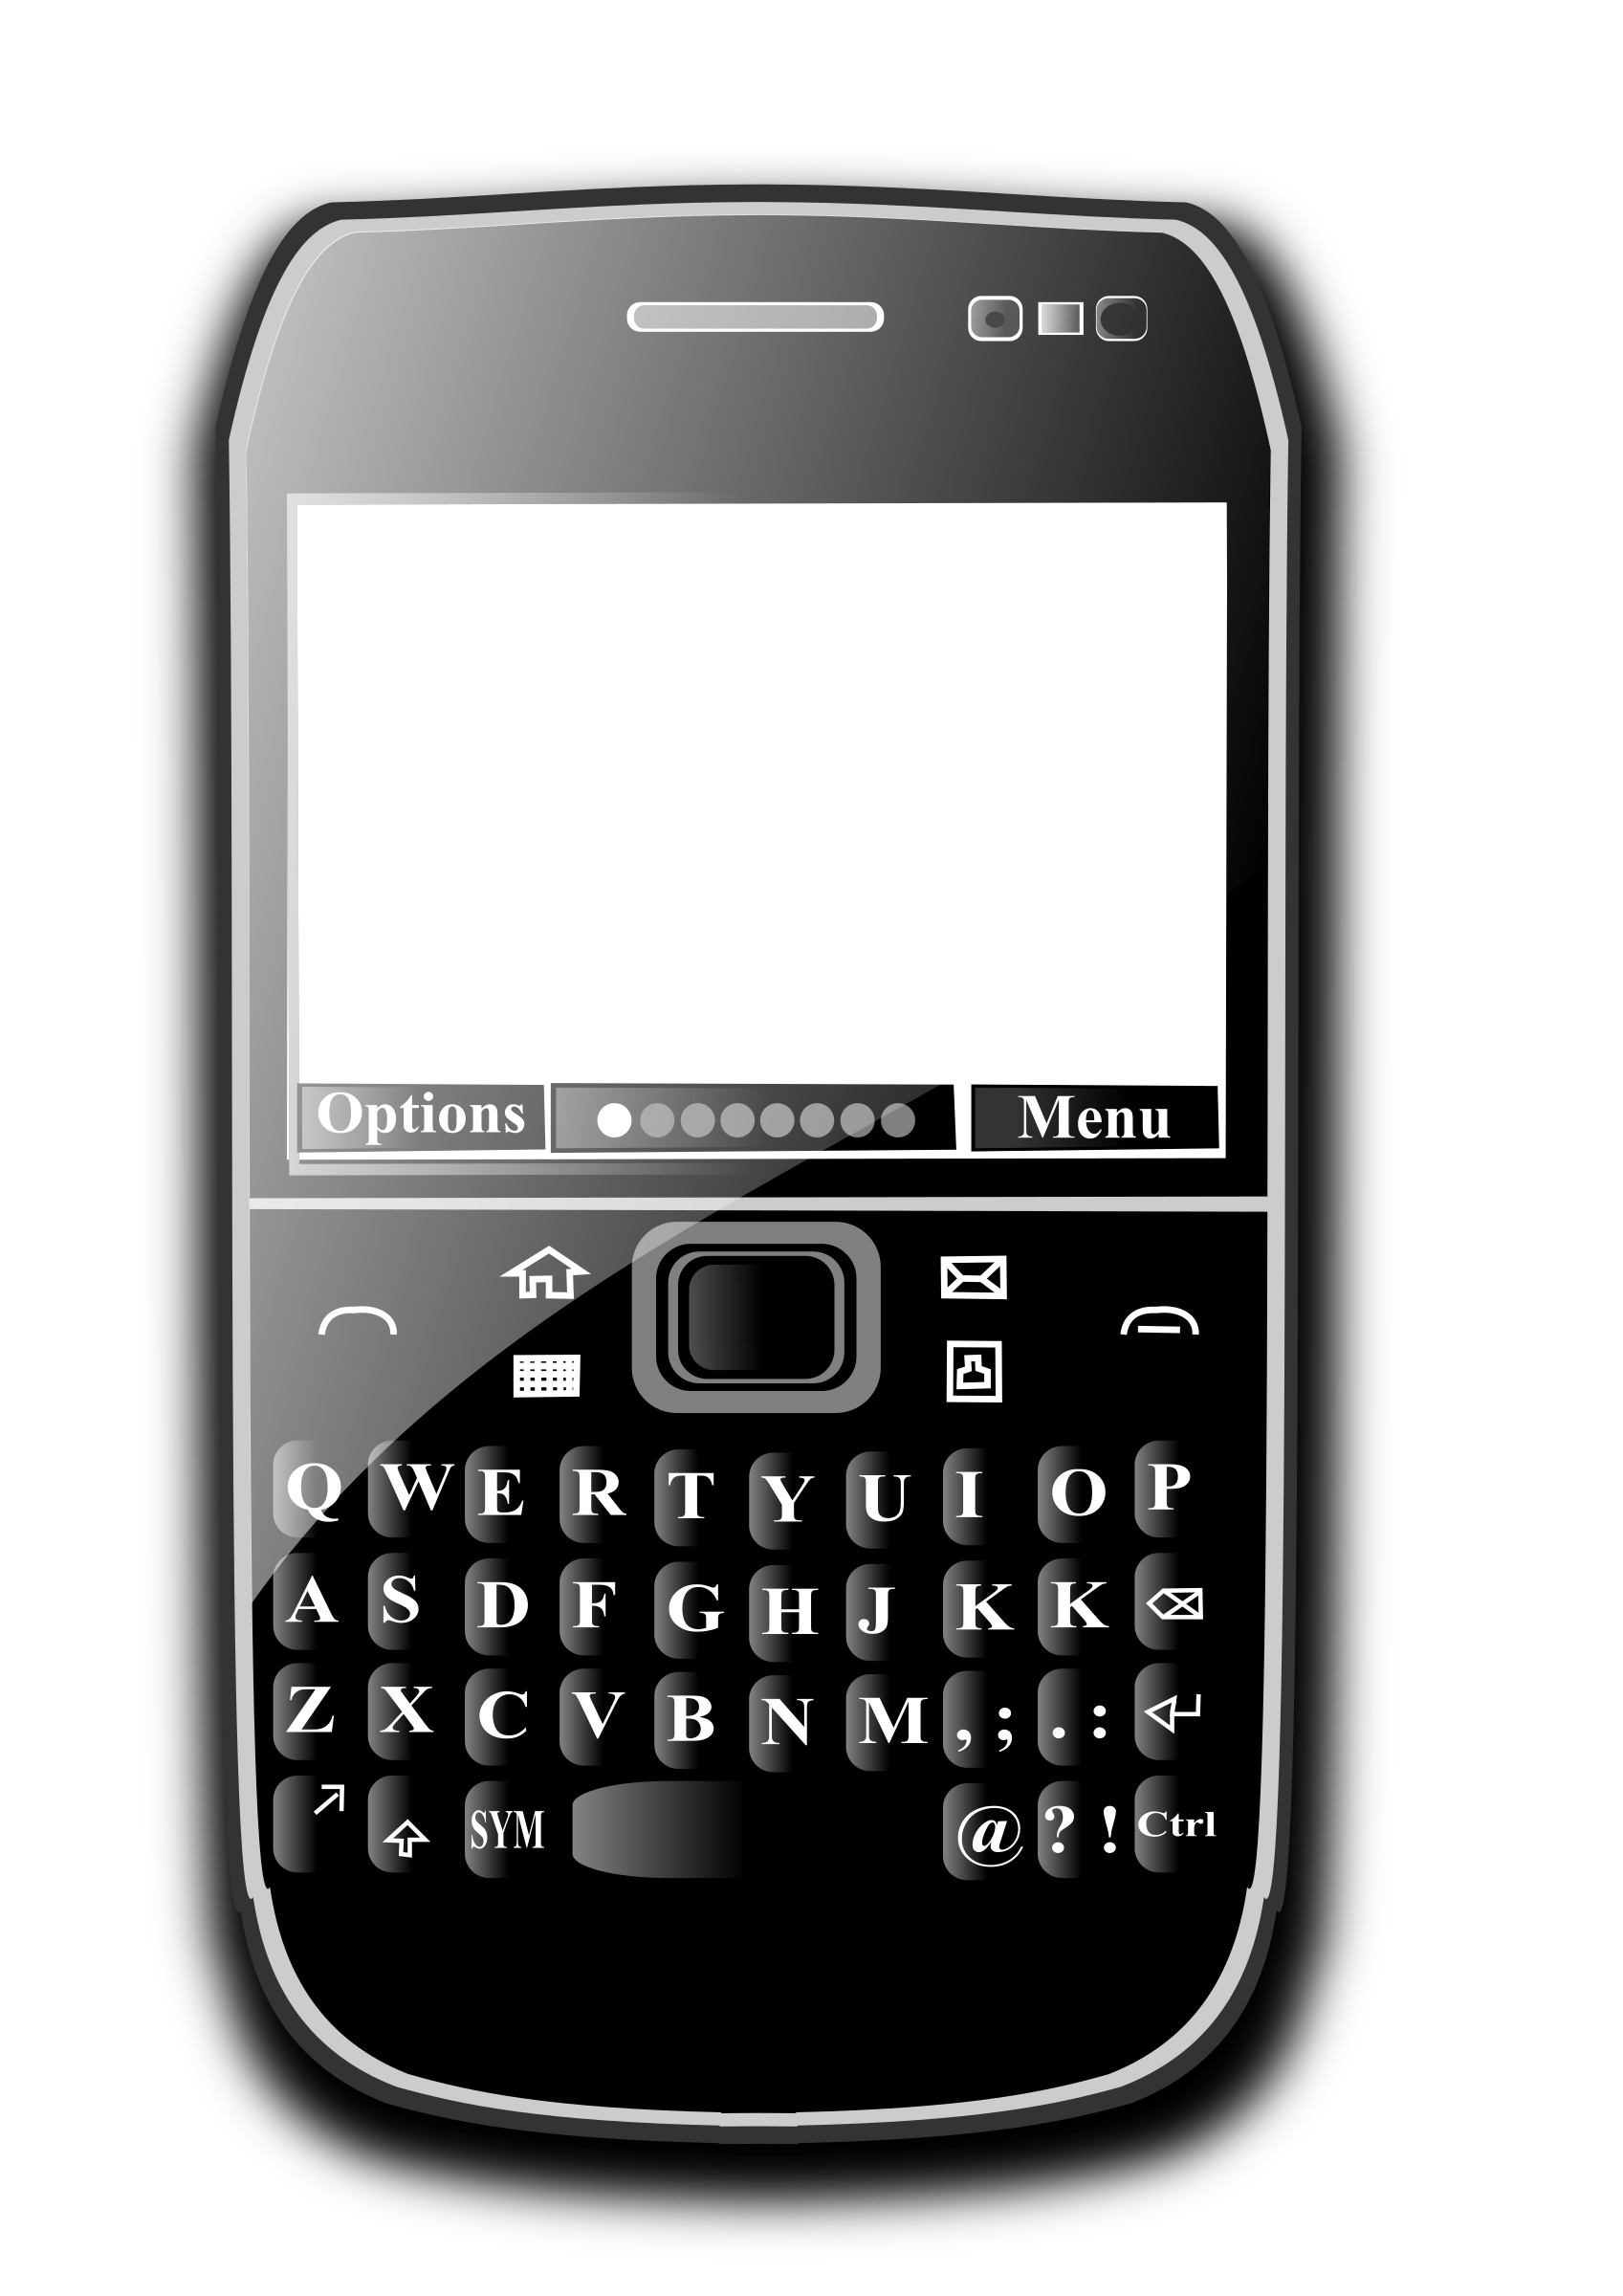 OpenClipArt on Mobile Phone by hatalar205